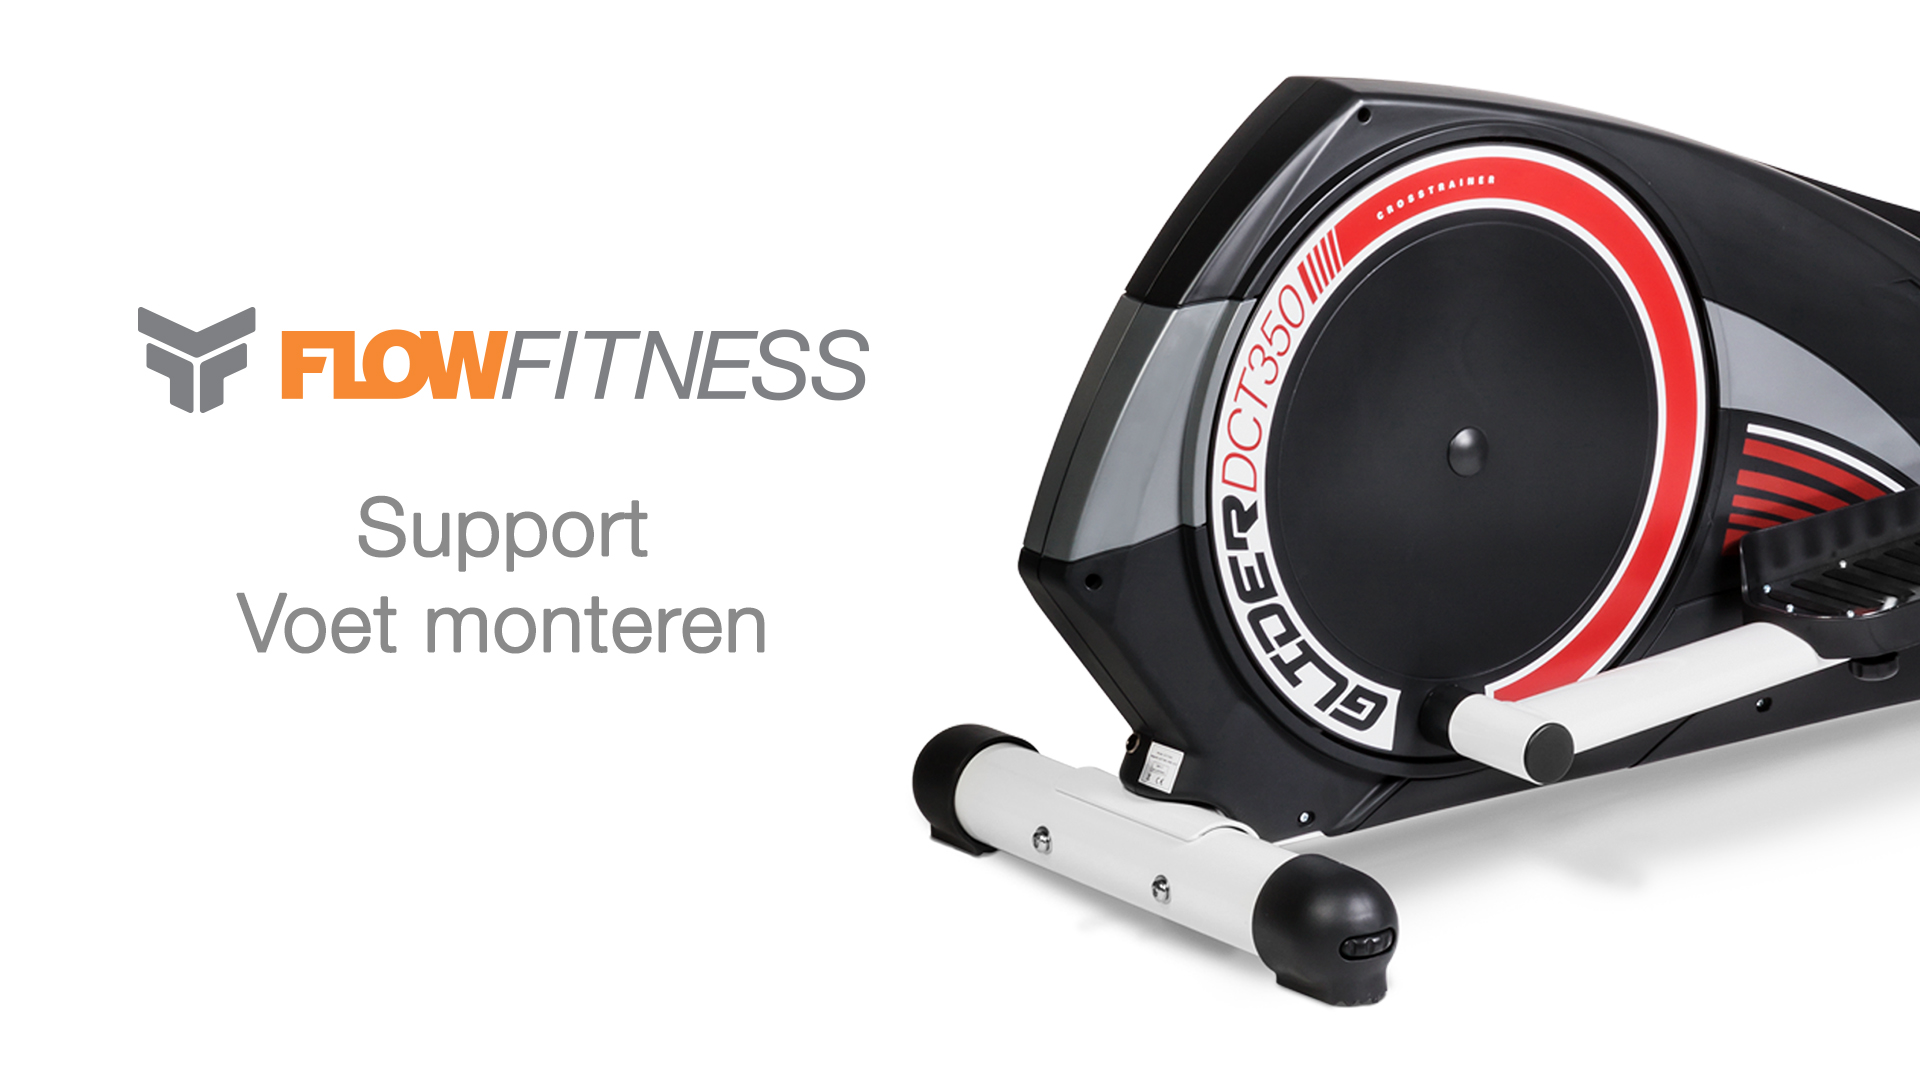 Hometrainer Crosstrainer voet monteren instructie video